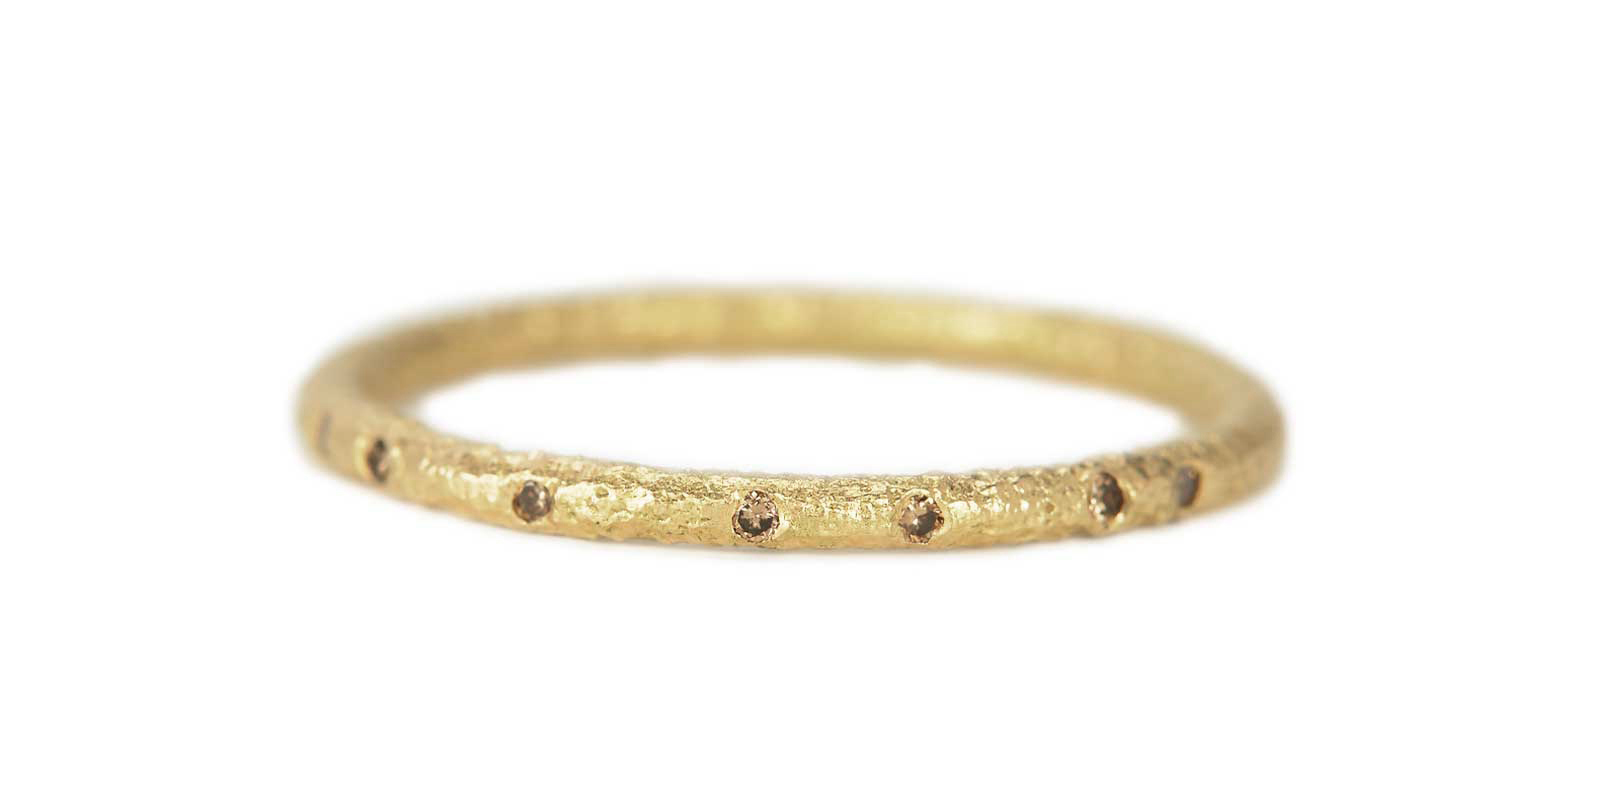 Diamond Scattered Eternity Ring – Champagne Diamond, 18ct Yellow Gold